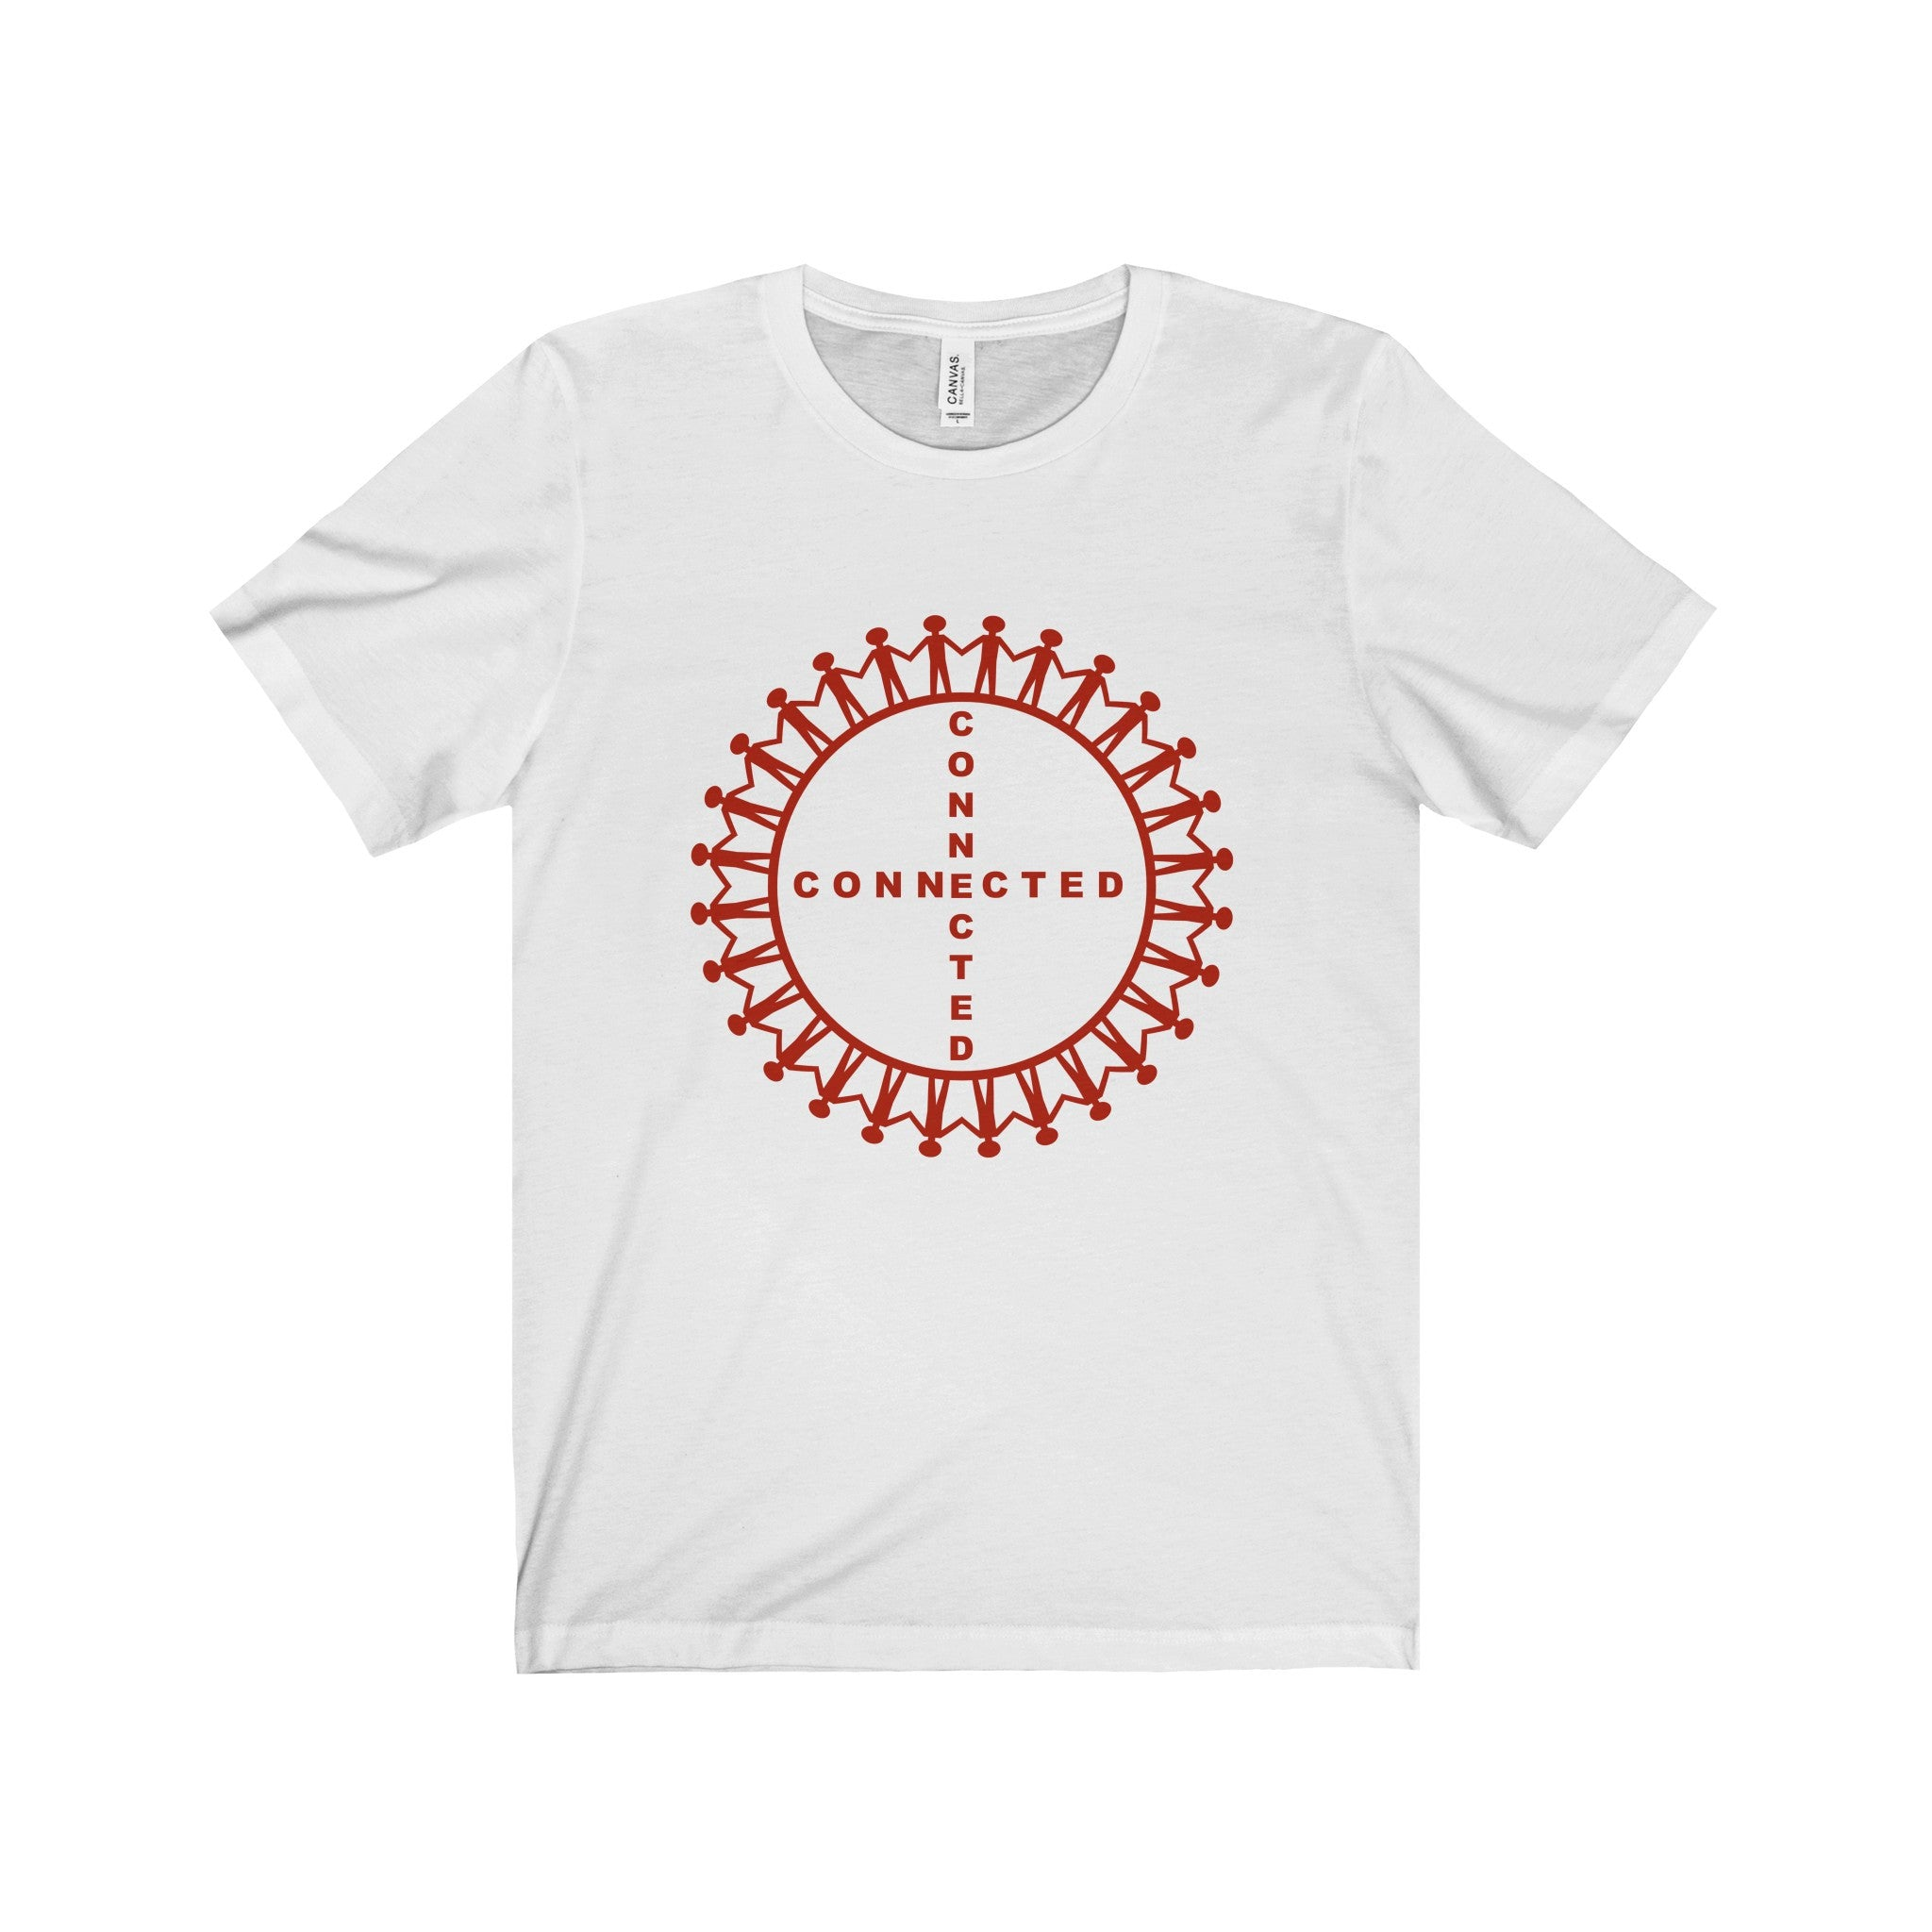 Connected Red Letter Tee (2 colors available)